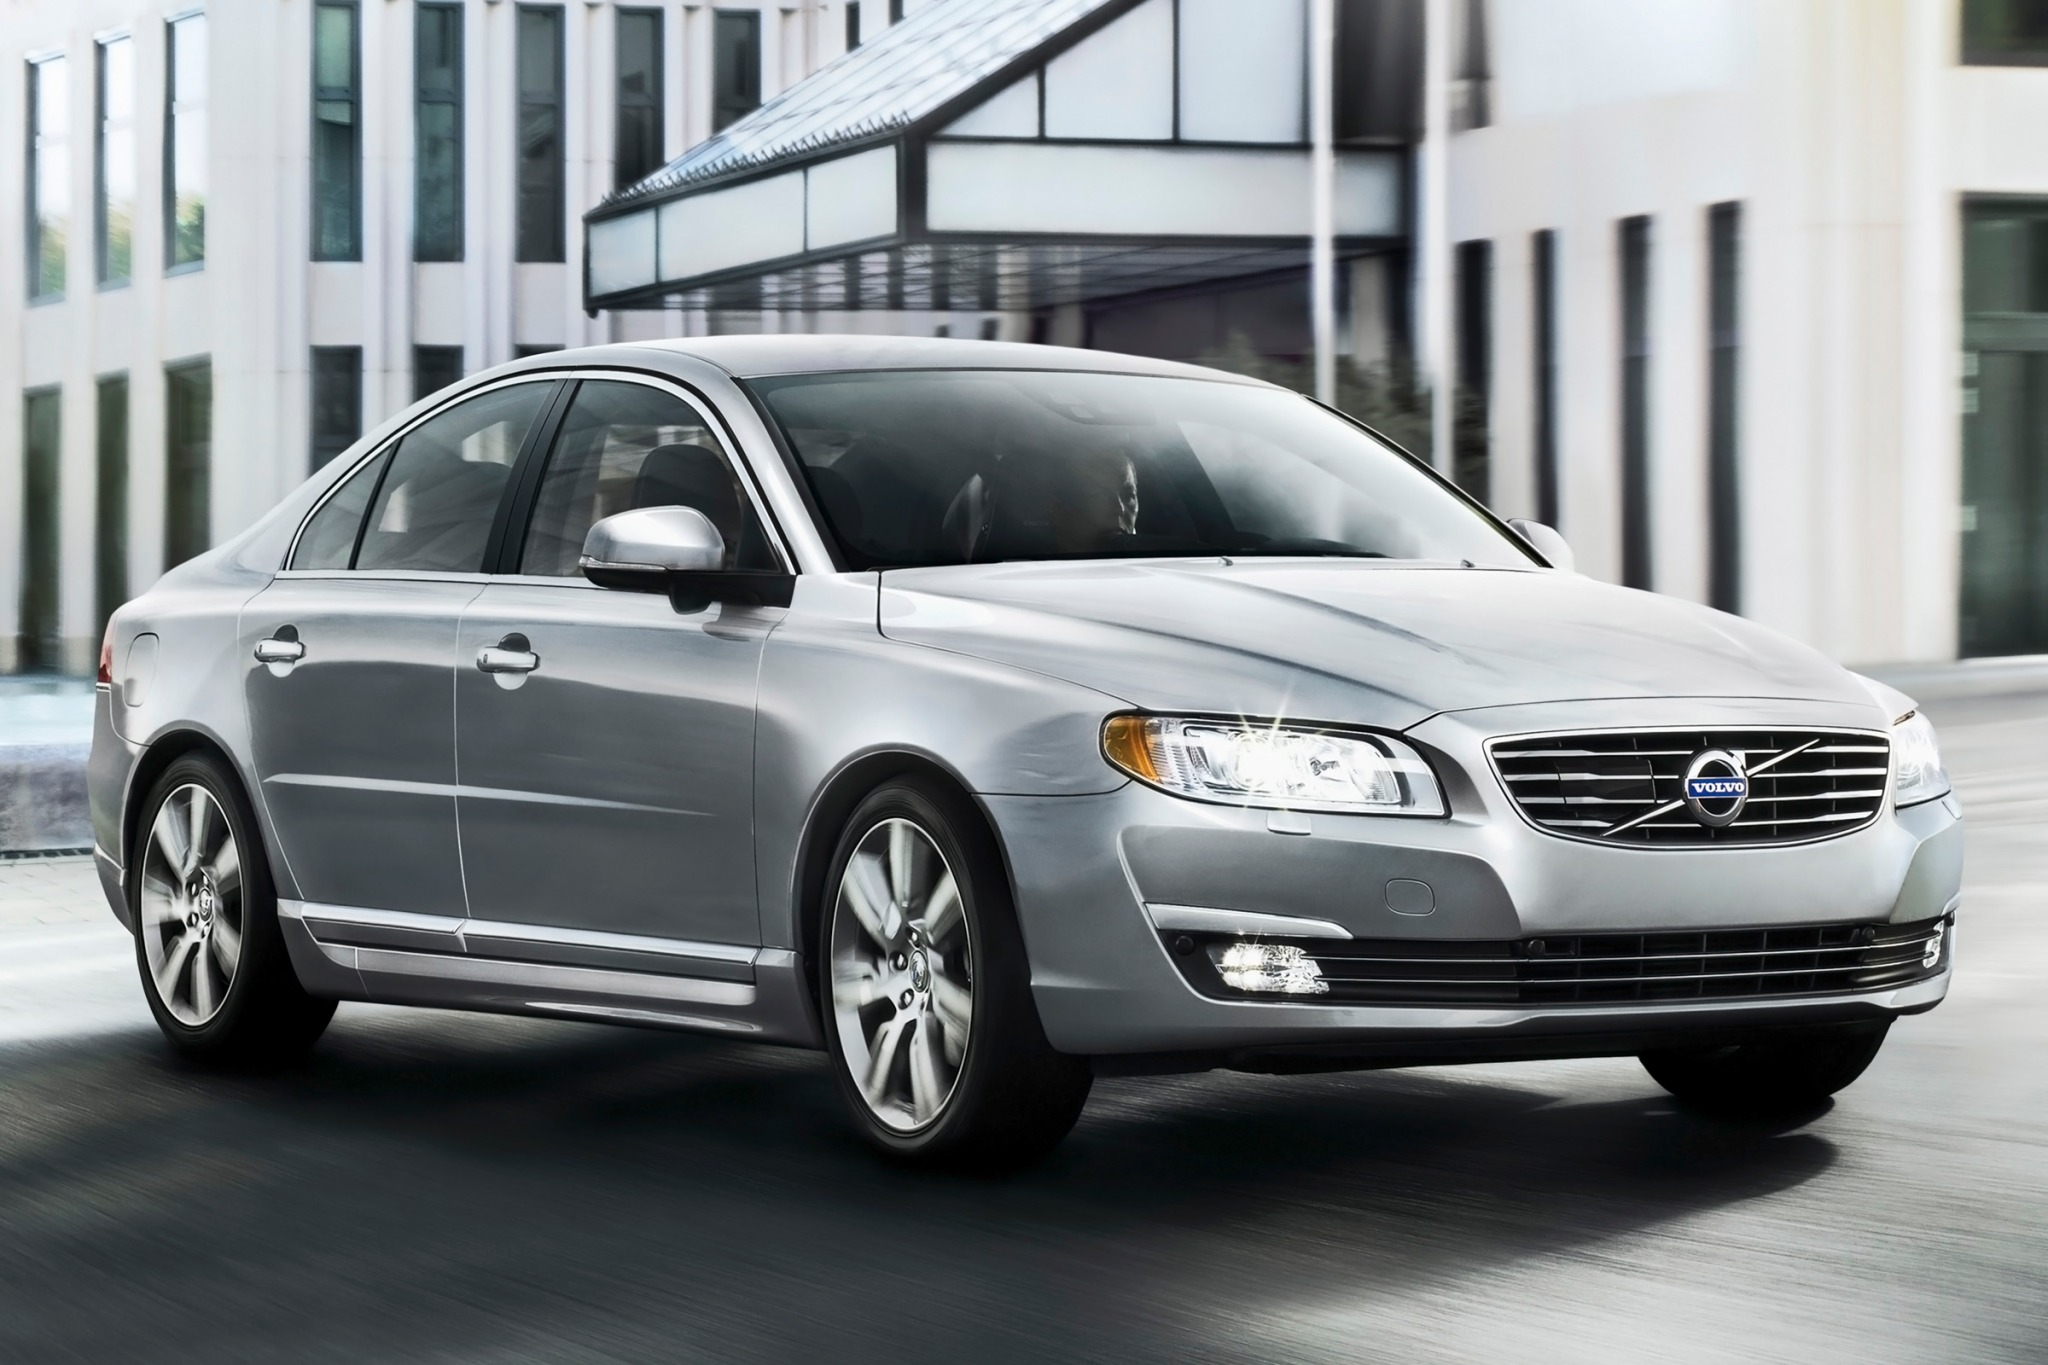 2014 Volvo S80 Sedan Cent interior #1